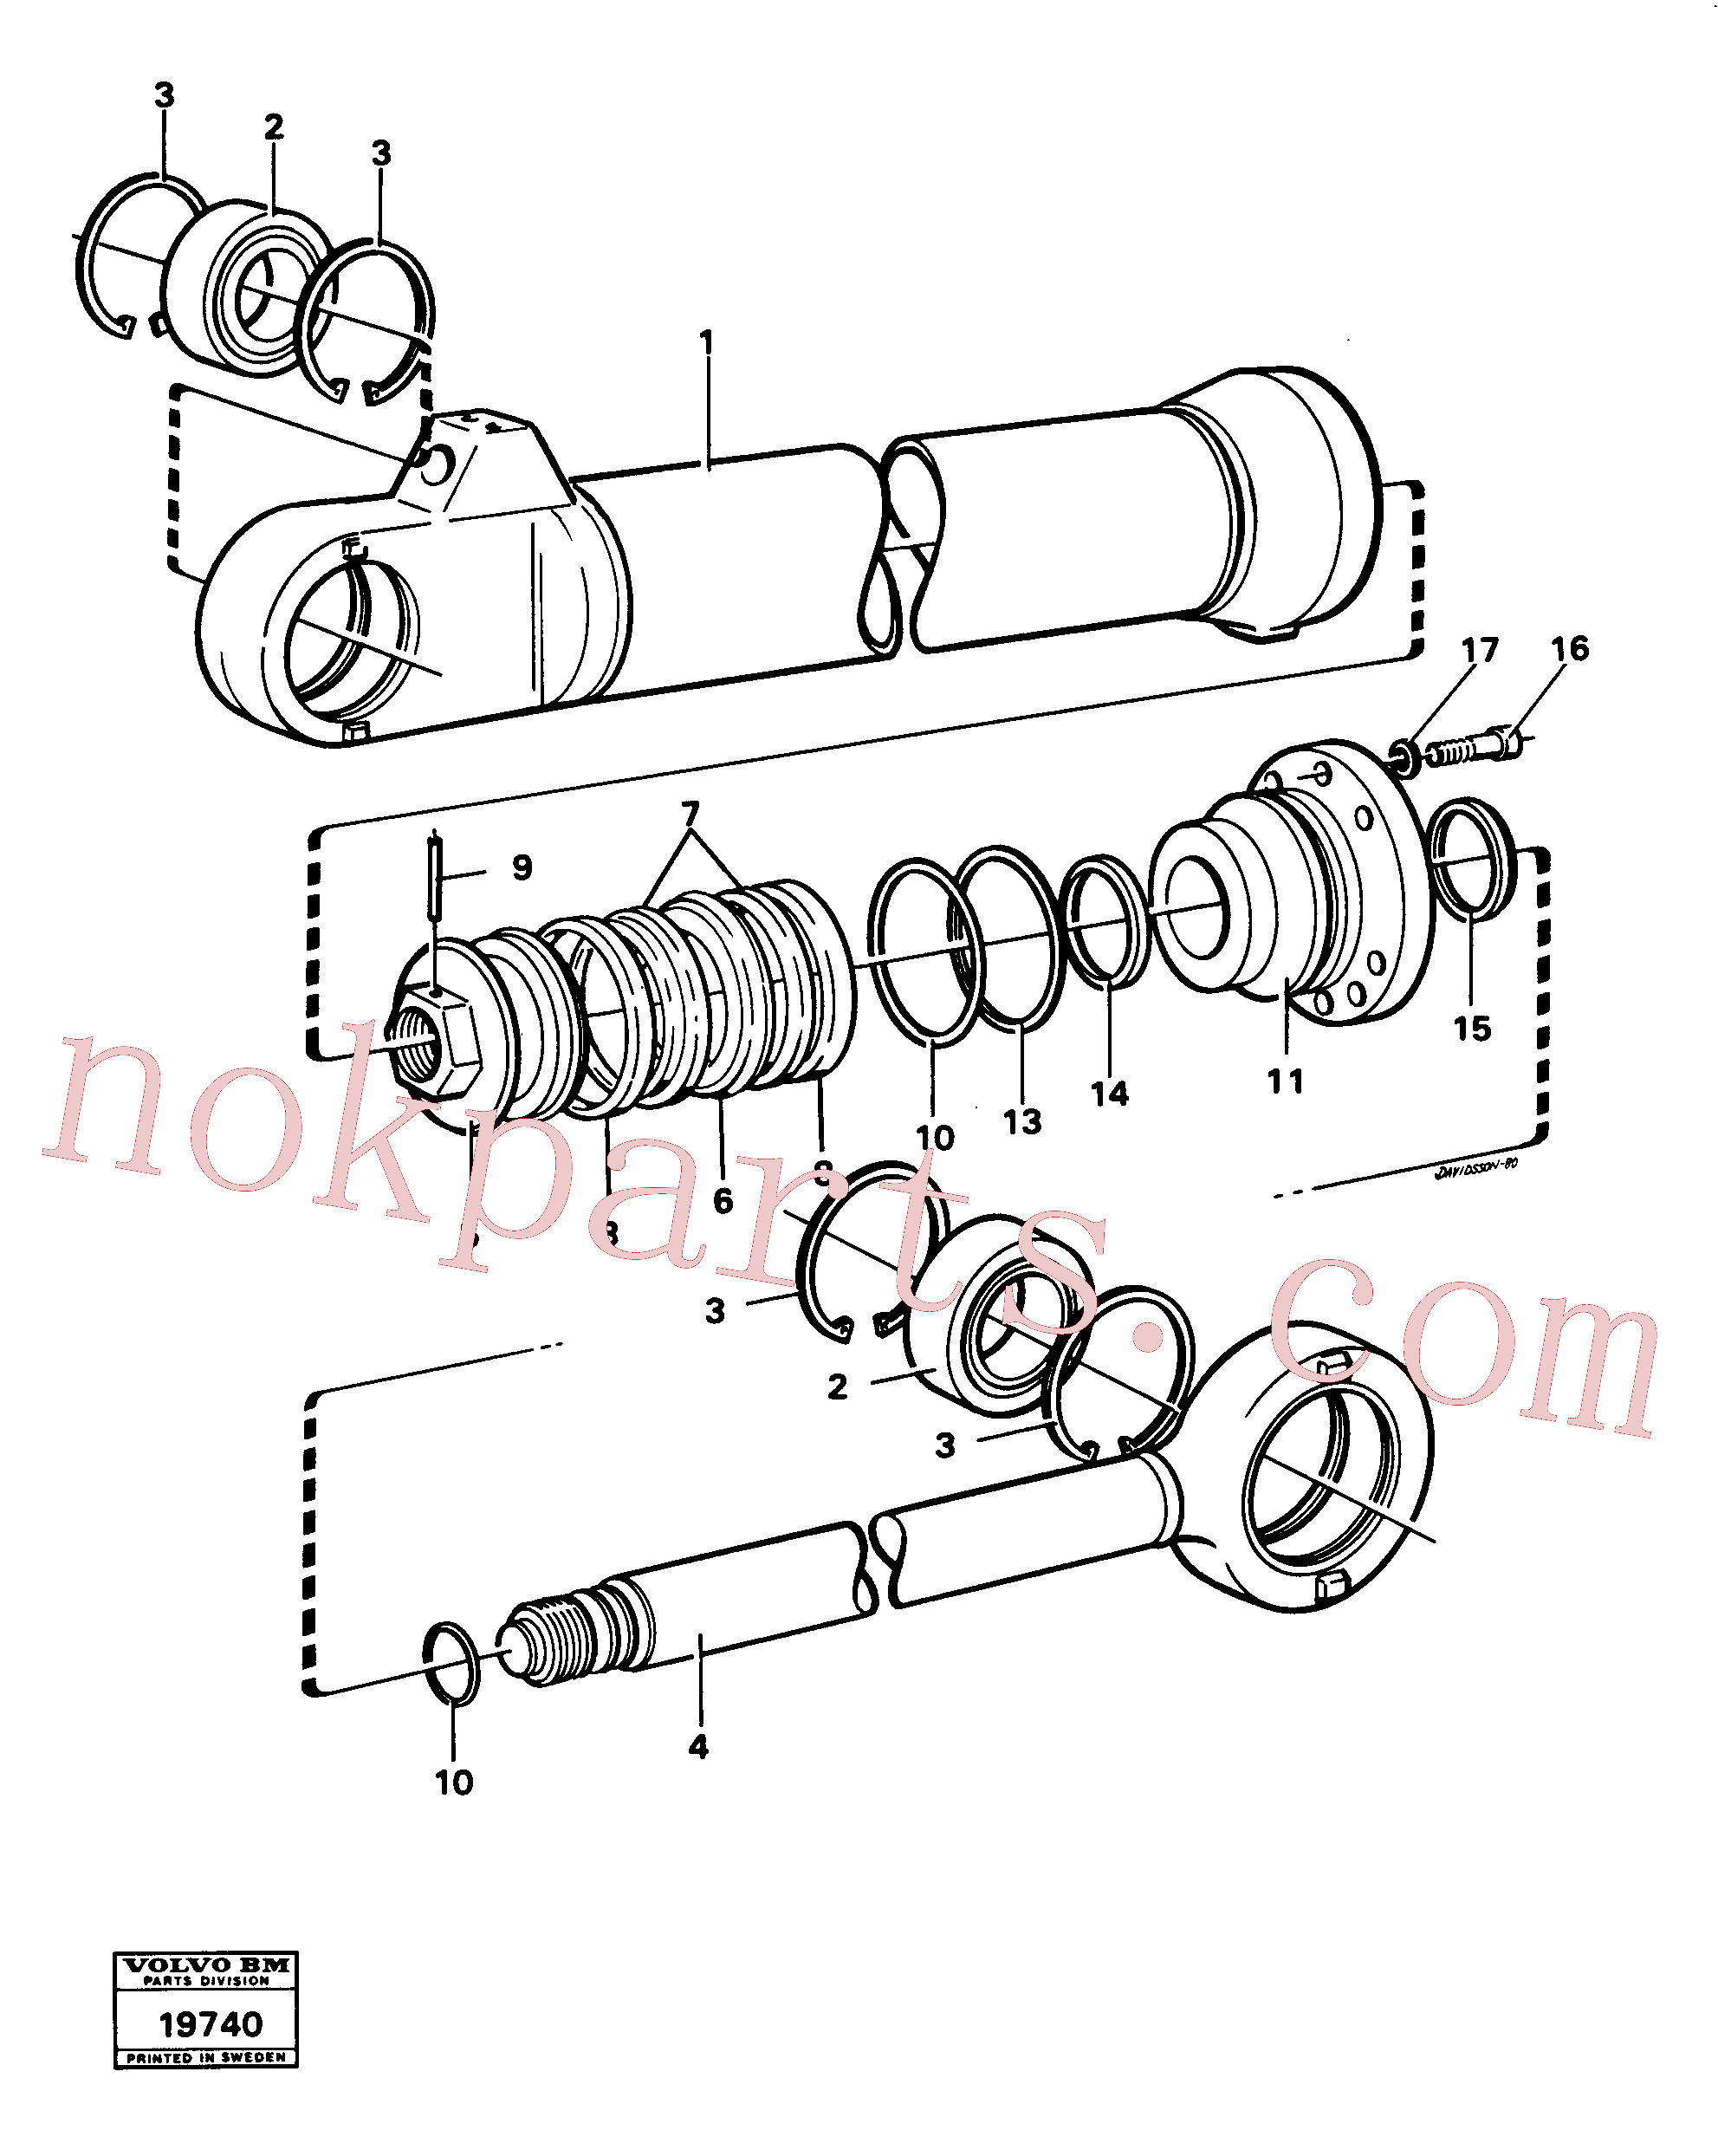 VOE960172 for Volvo Hydraulic cylinder tilting(19740 assembly)